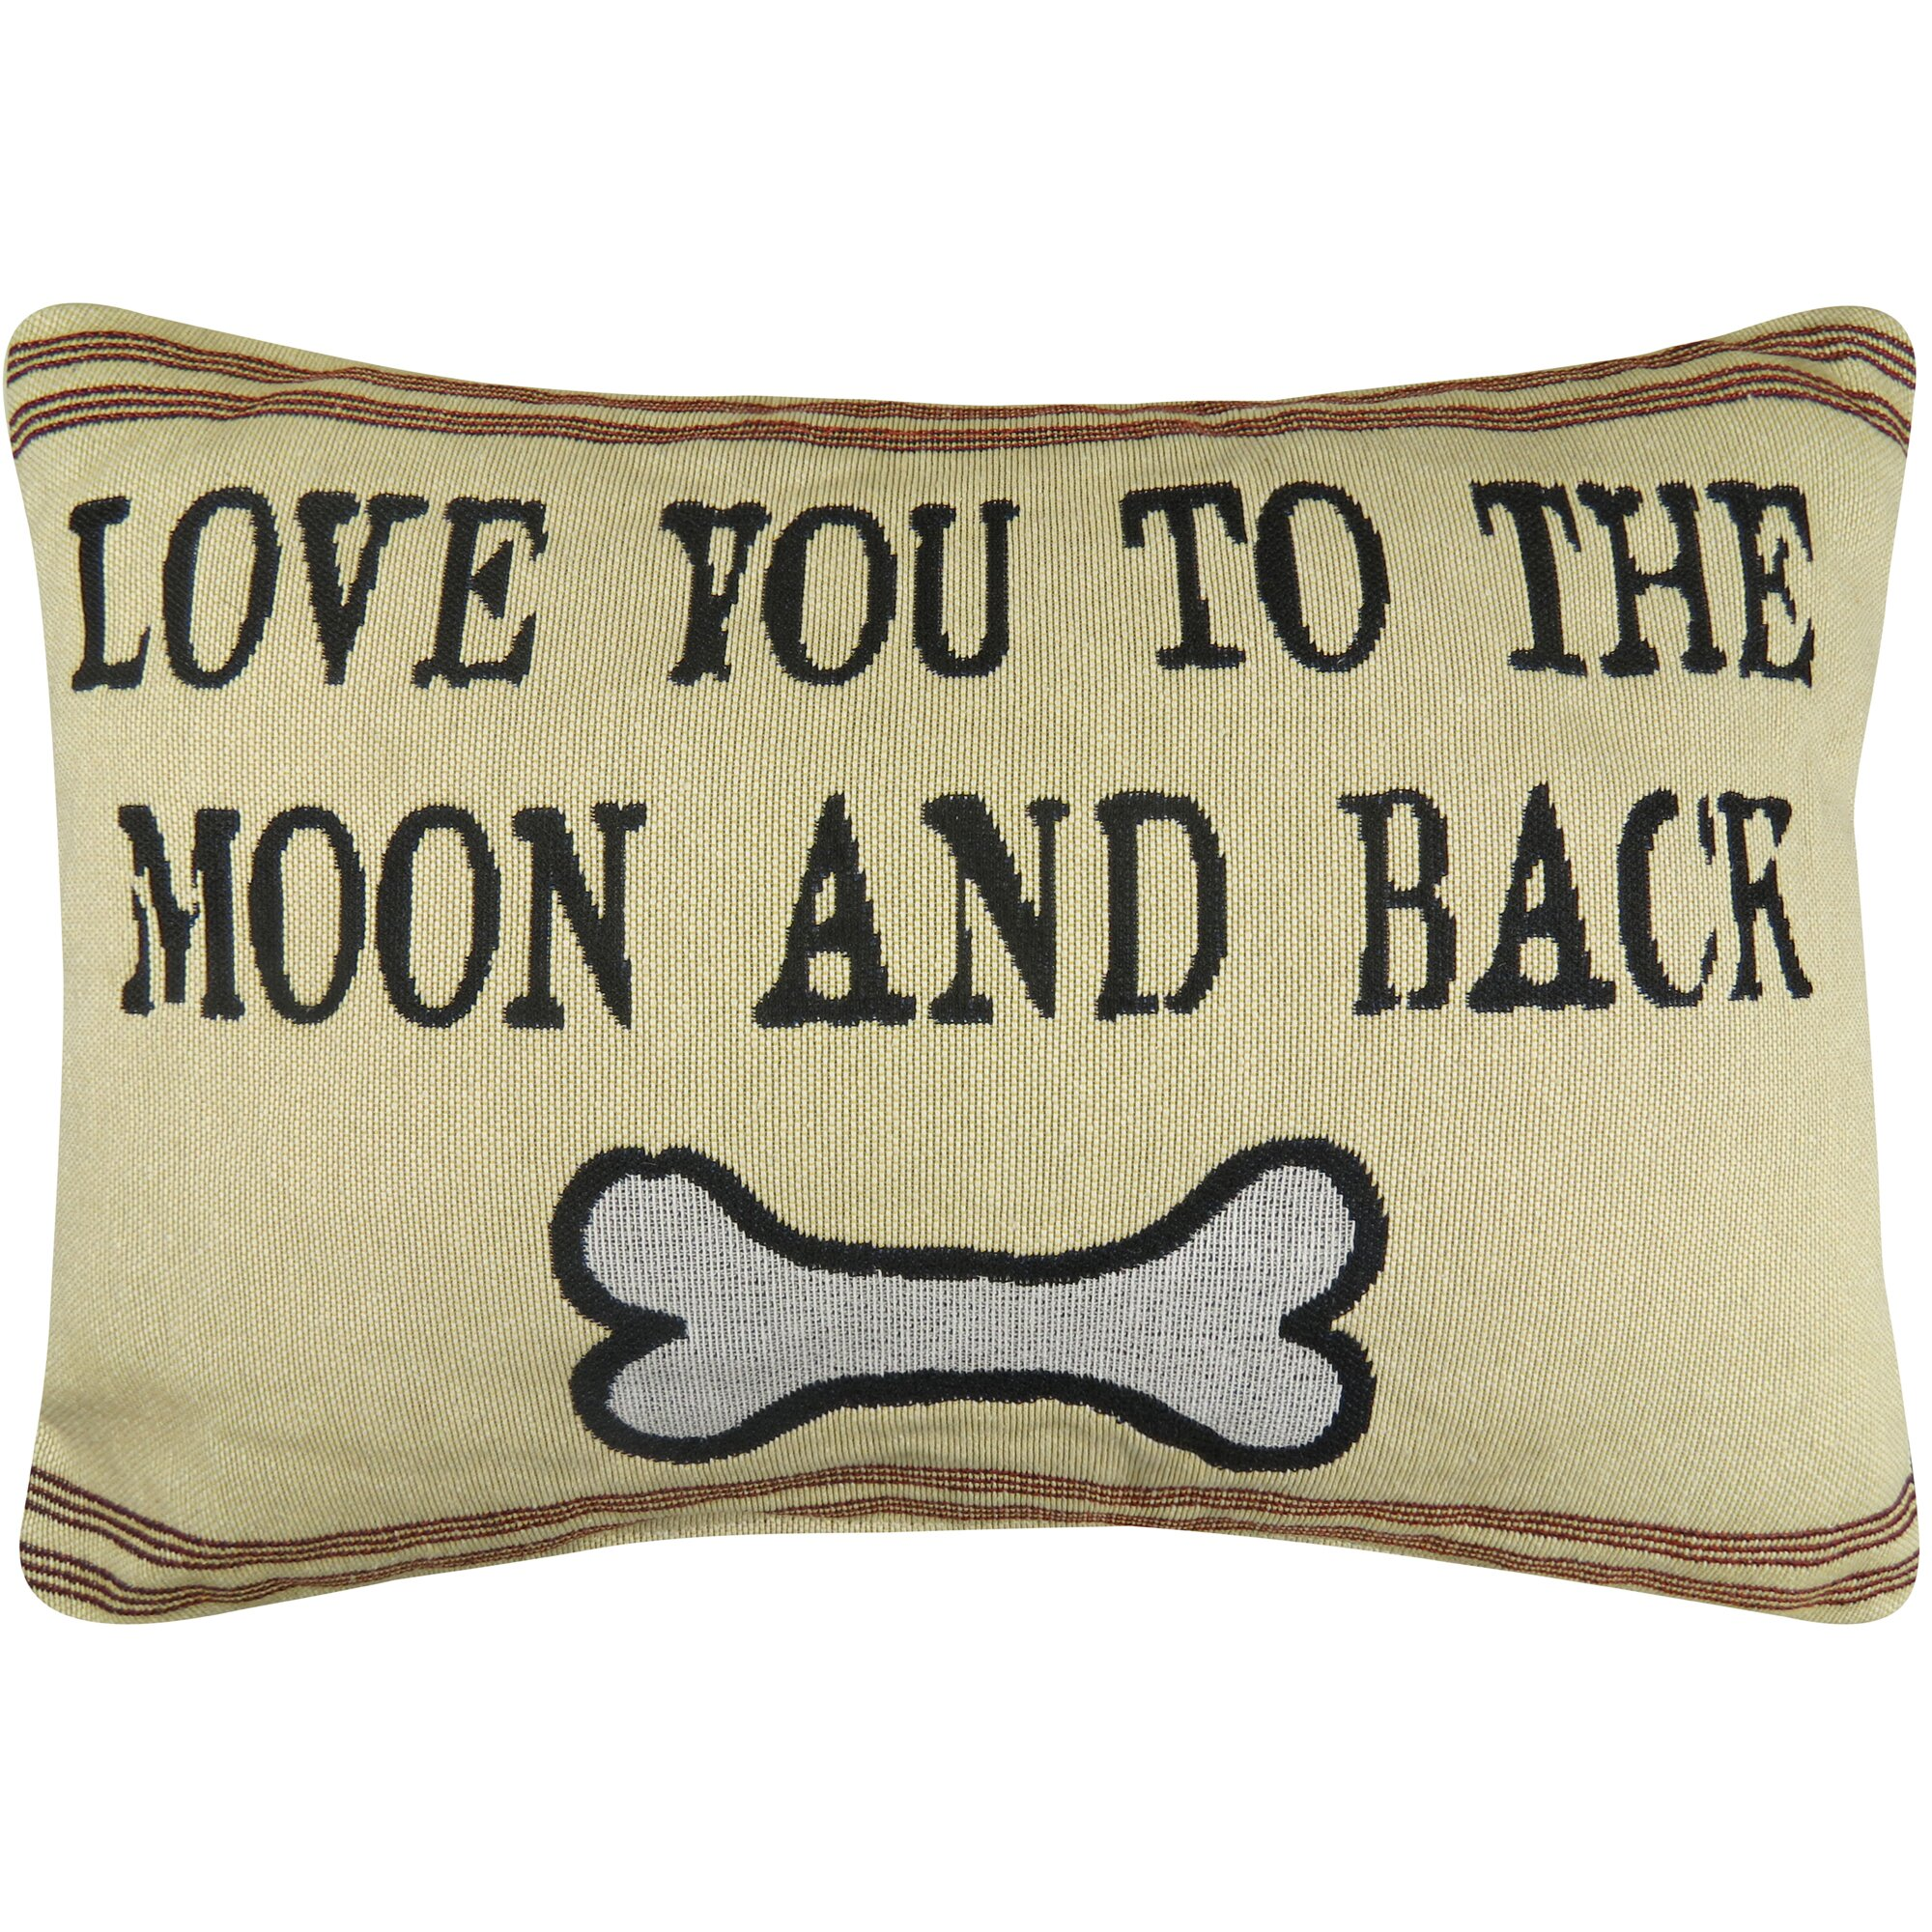 pet love you to moon tapestry decorative lumbar pillow - Decorative Lumbar Pillows